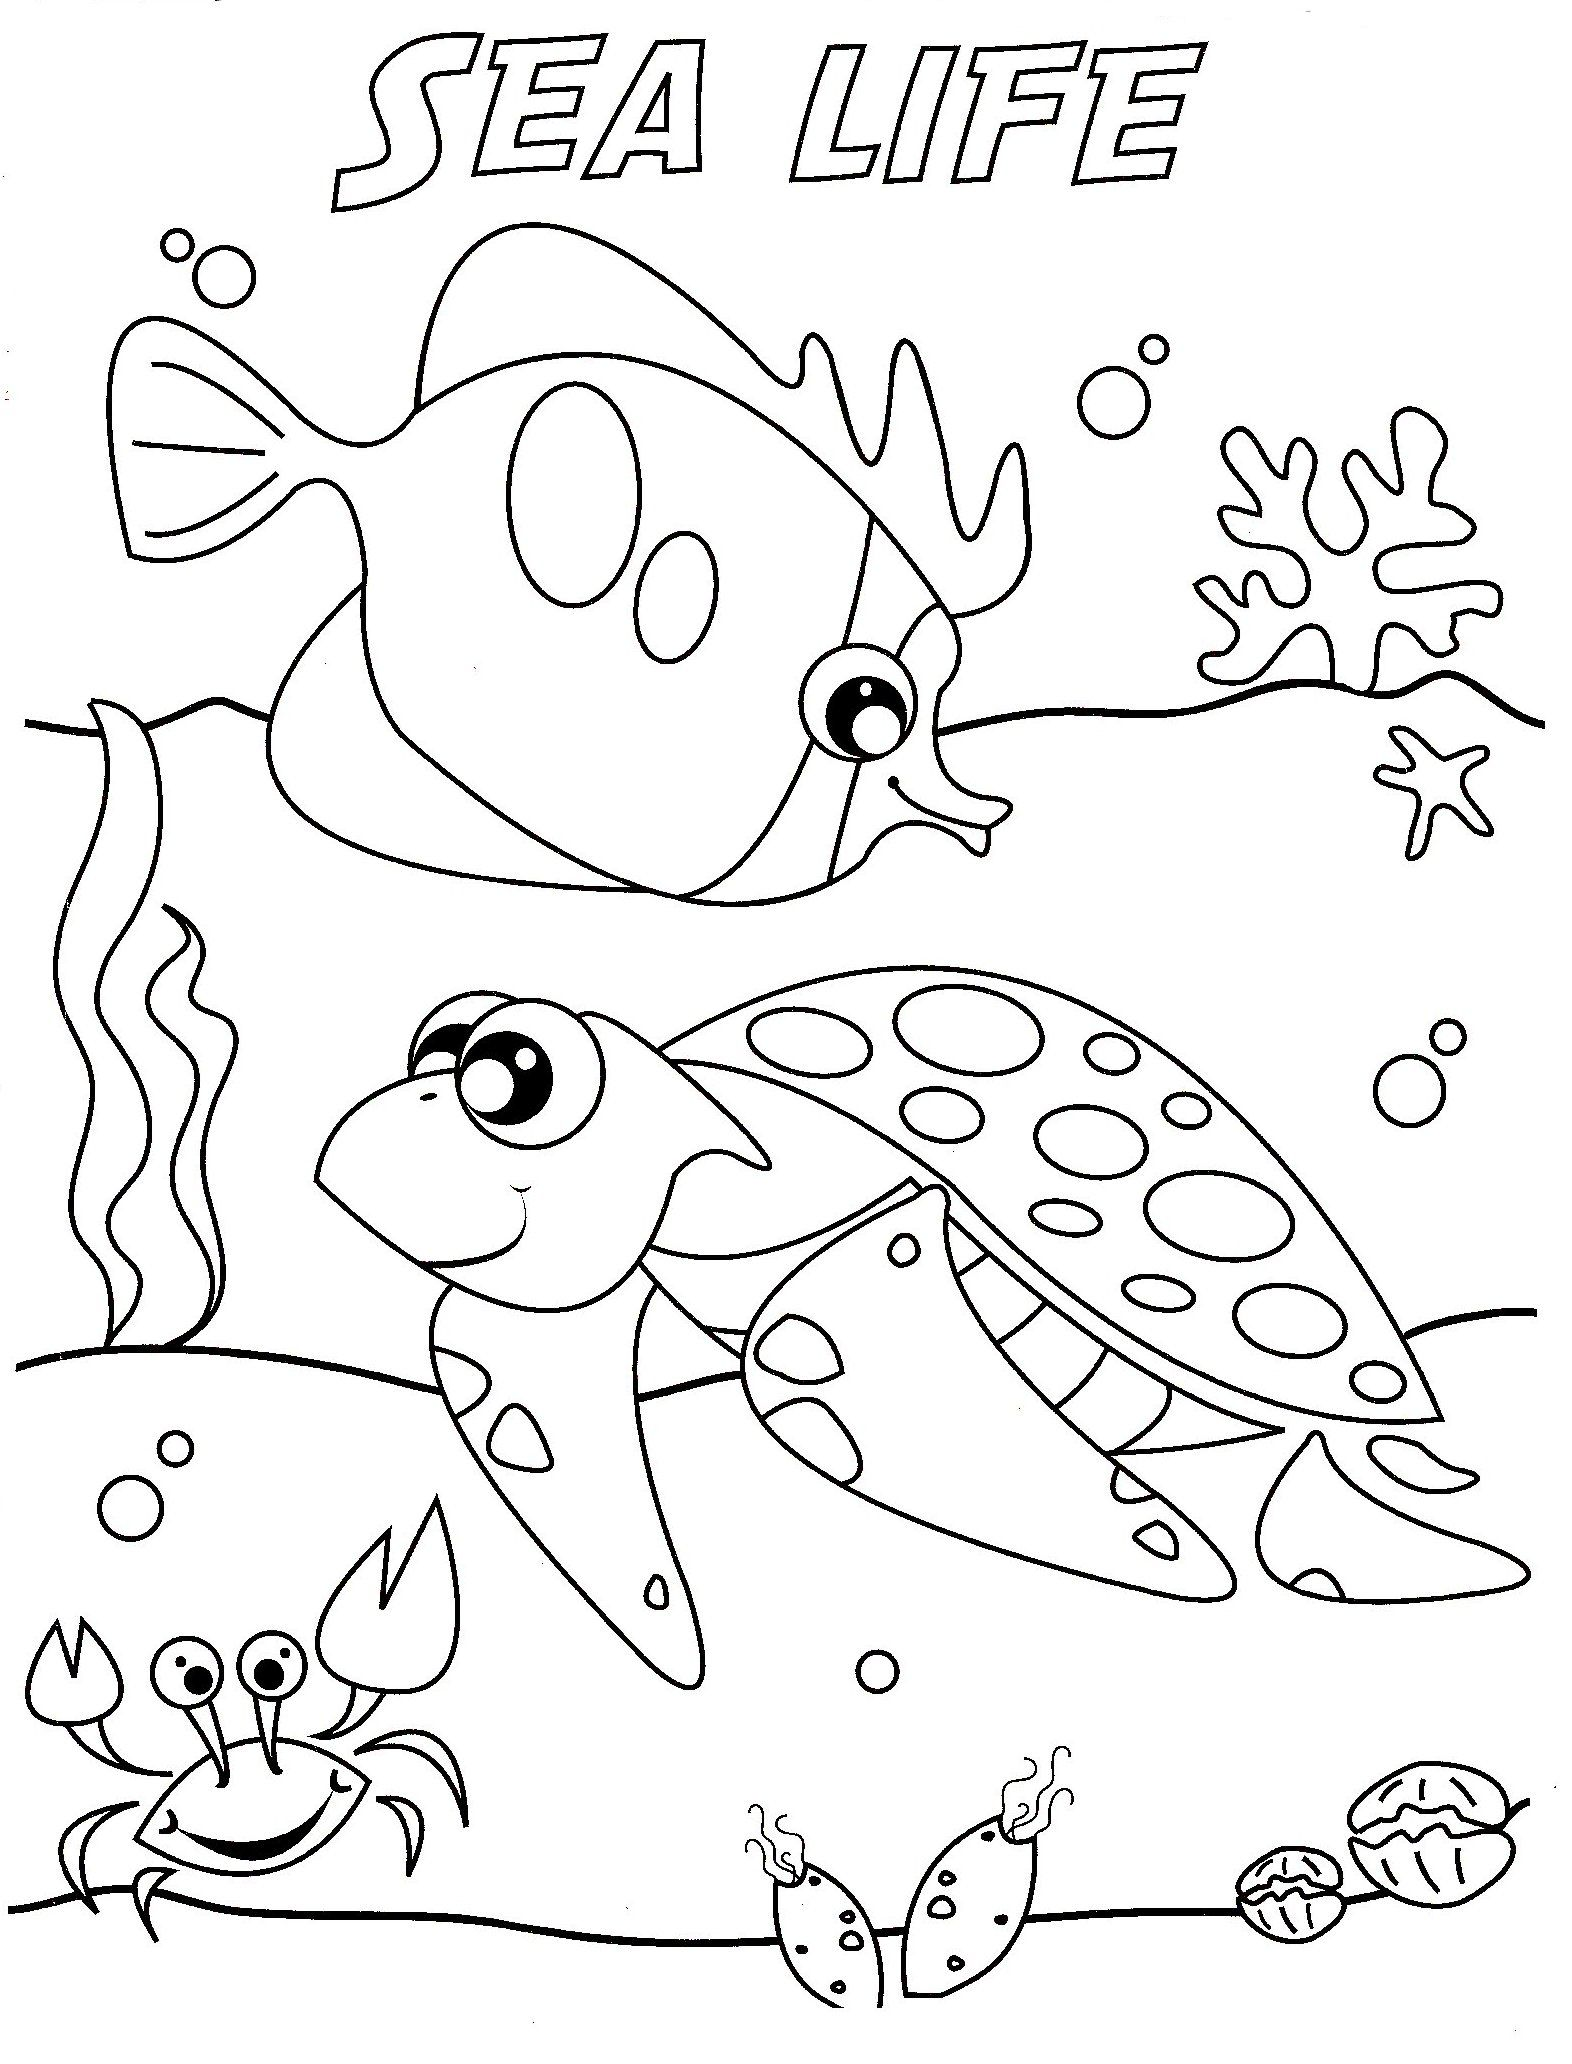 Ocean life coloring pages to download